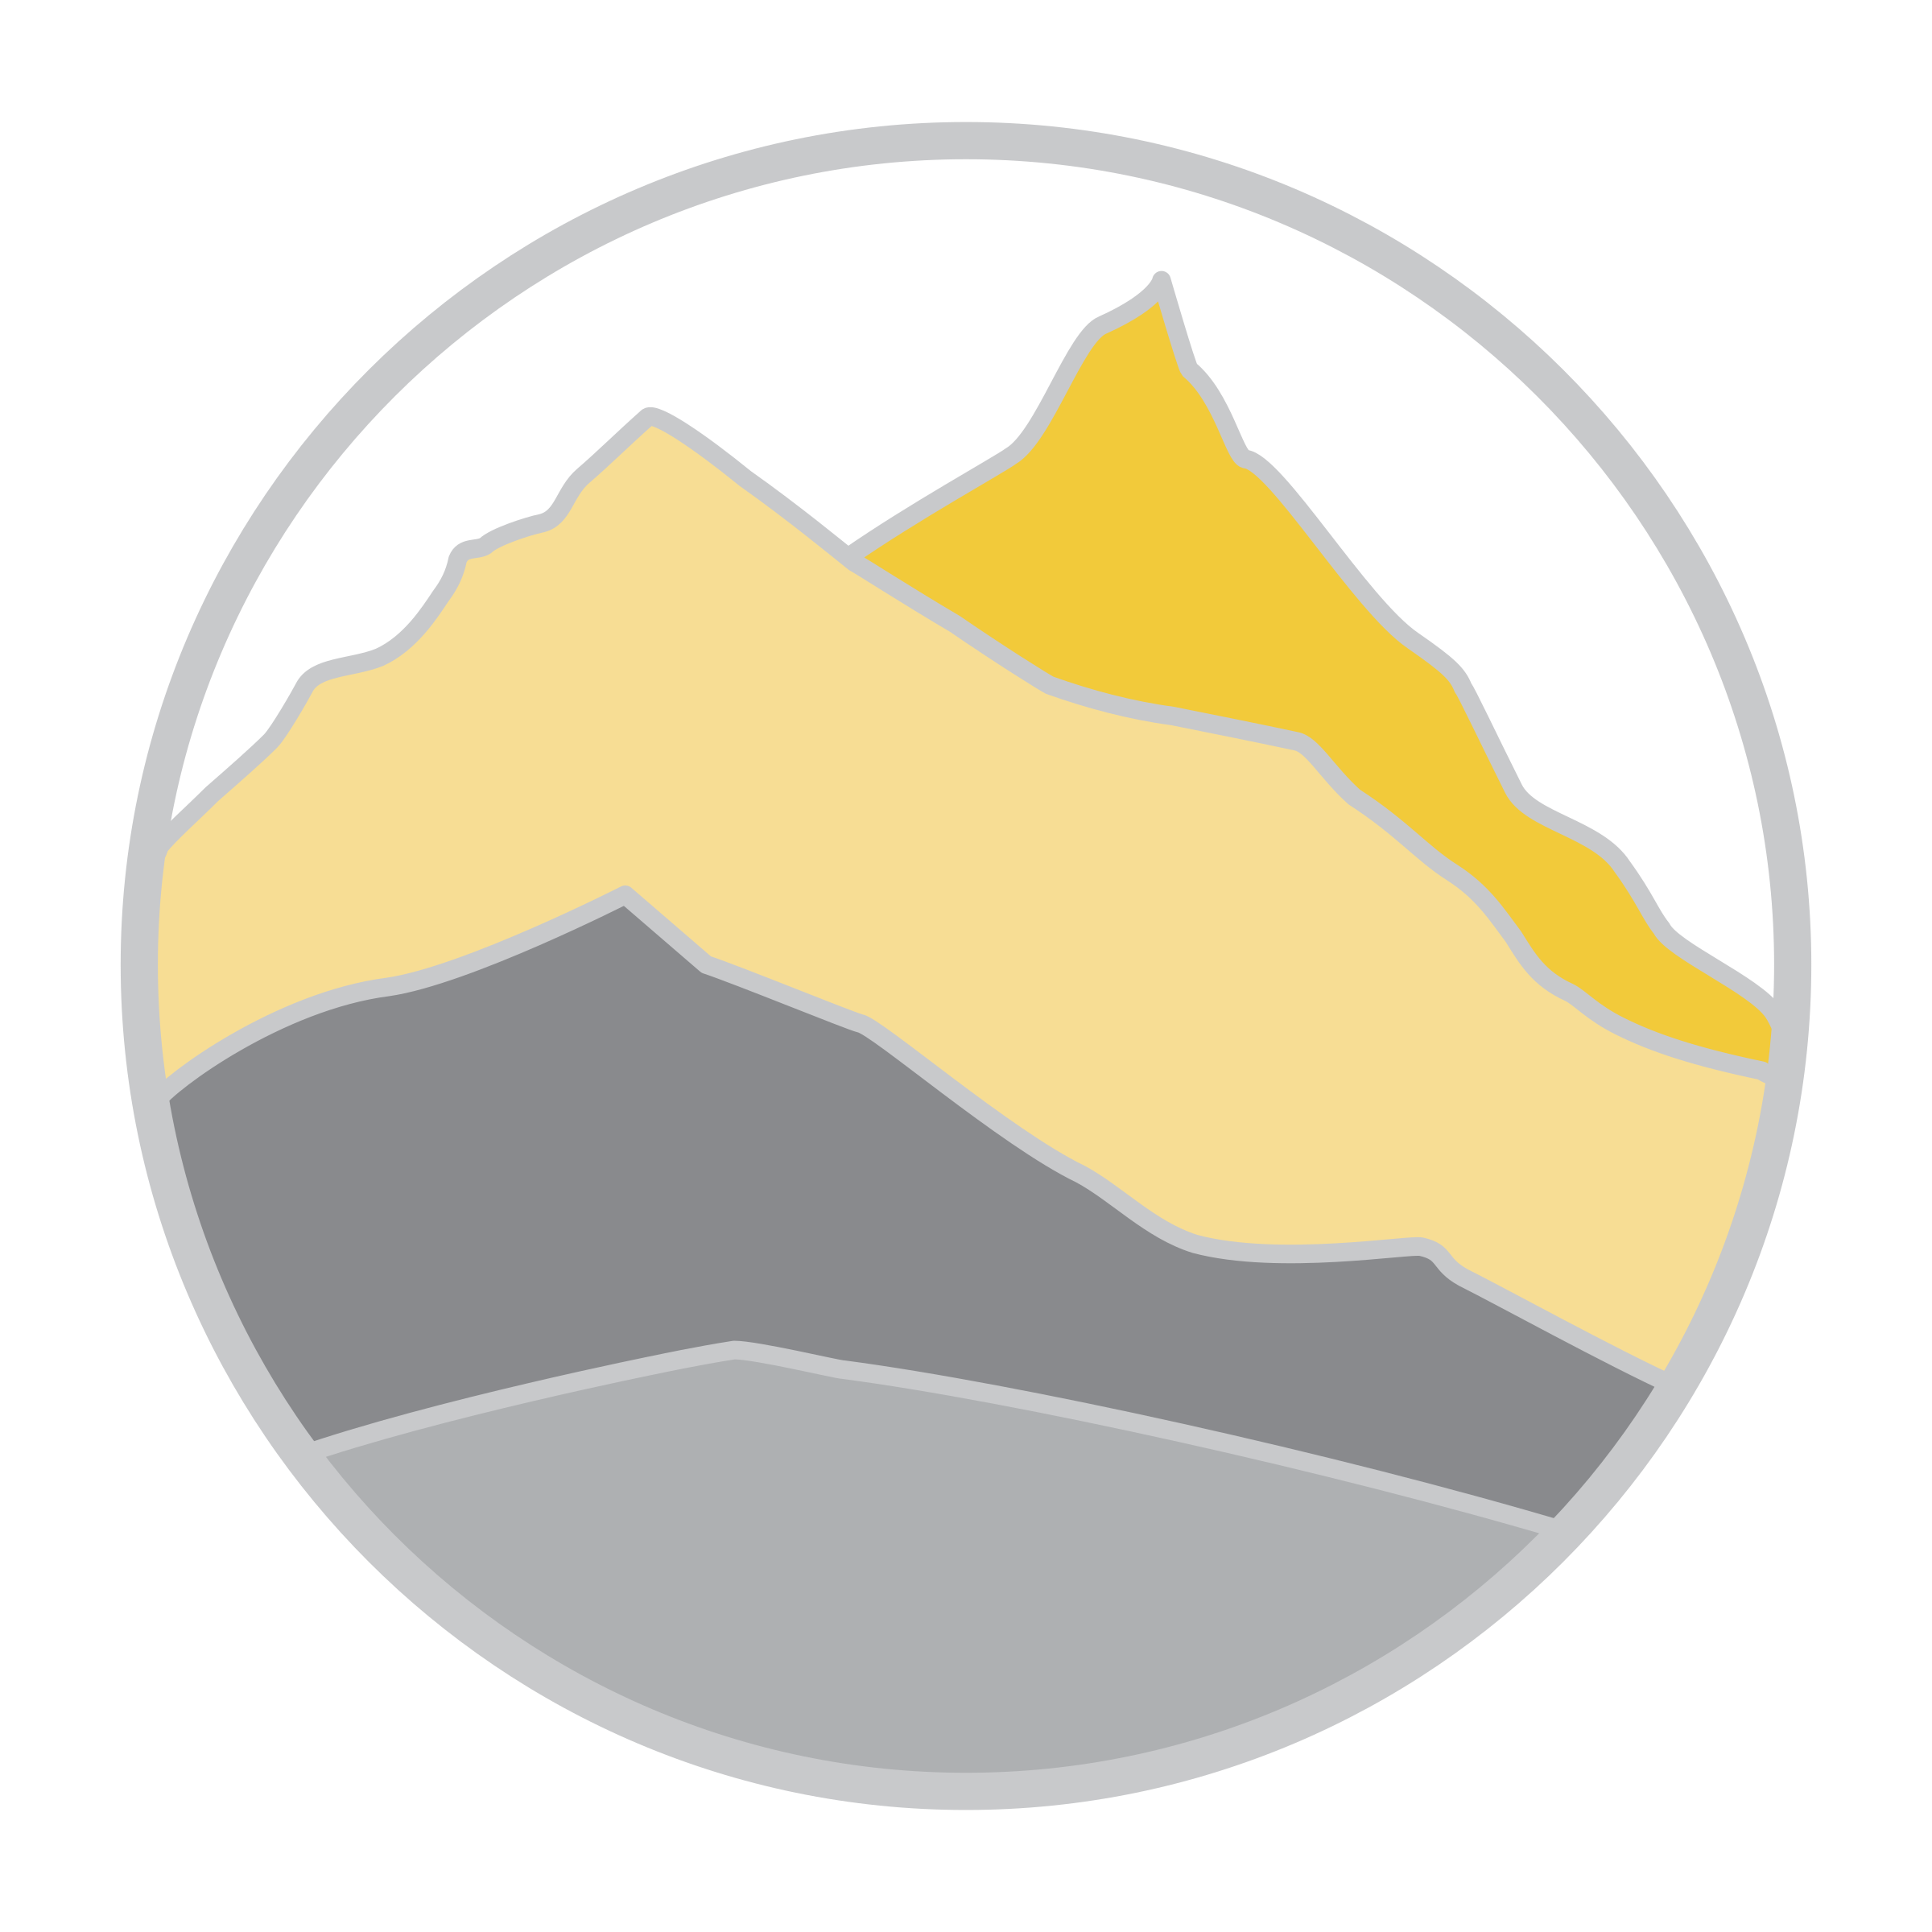 Moutain vector red mountain. Minerals logo png transparent